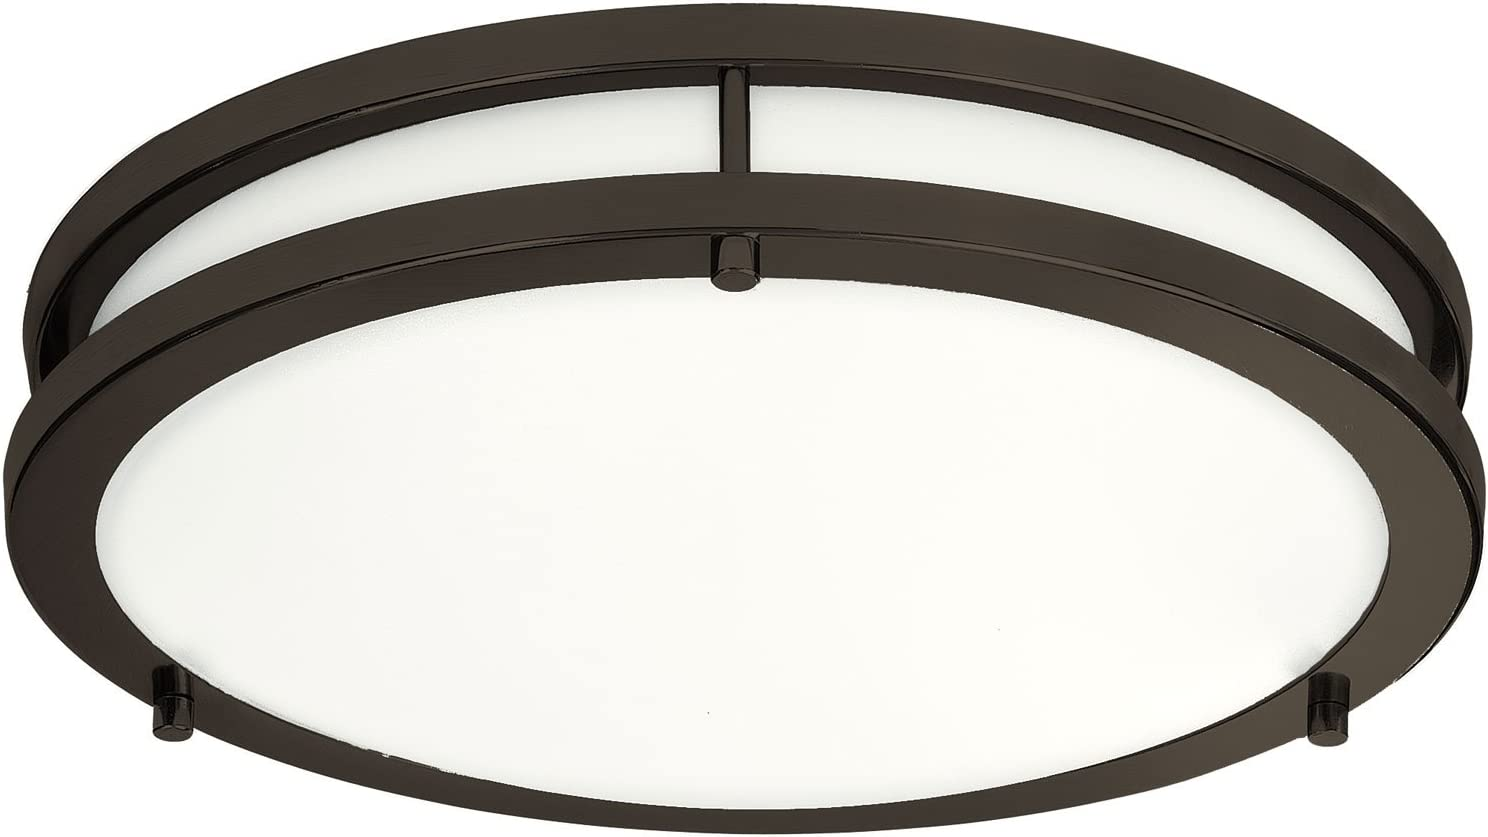 LB72121 LED Flush Mount Ceiling Light, 12 inch, 15W